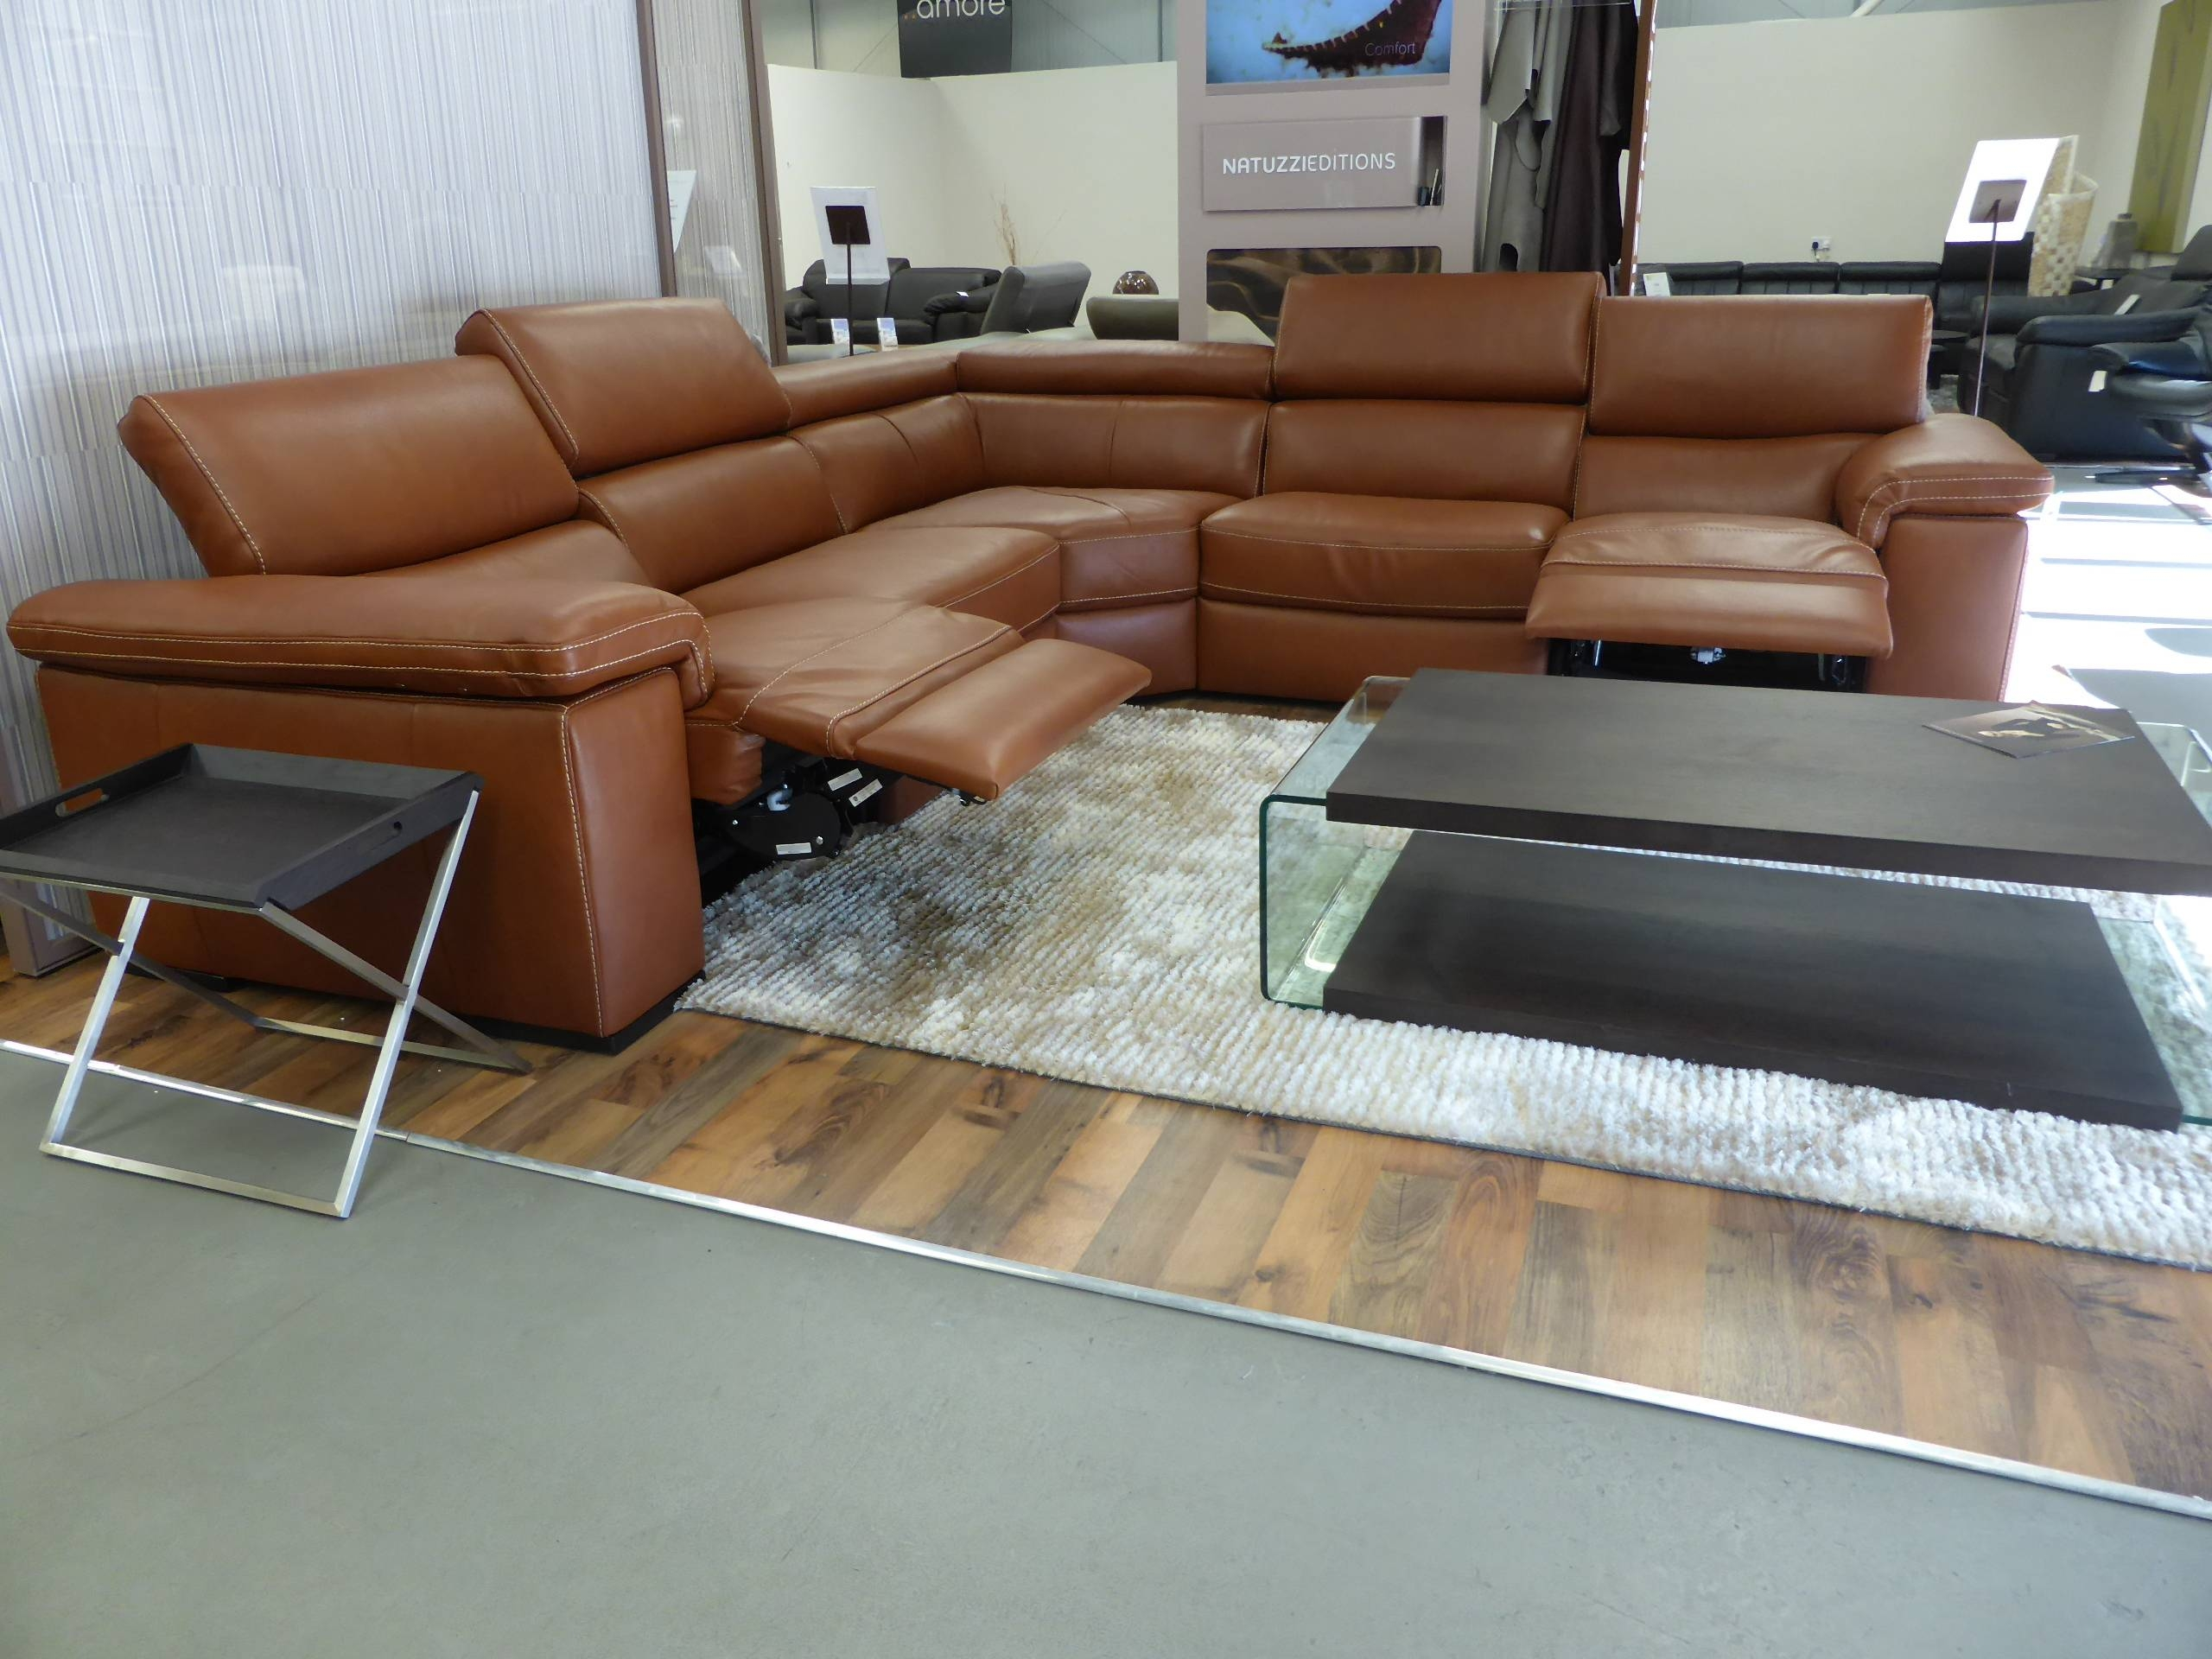 Furniture: Natuzzi Leather Couch | Macy's Leather Furniture Inside Caramel Leather Sofas (View 7 of 15)